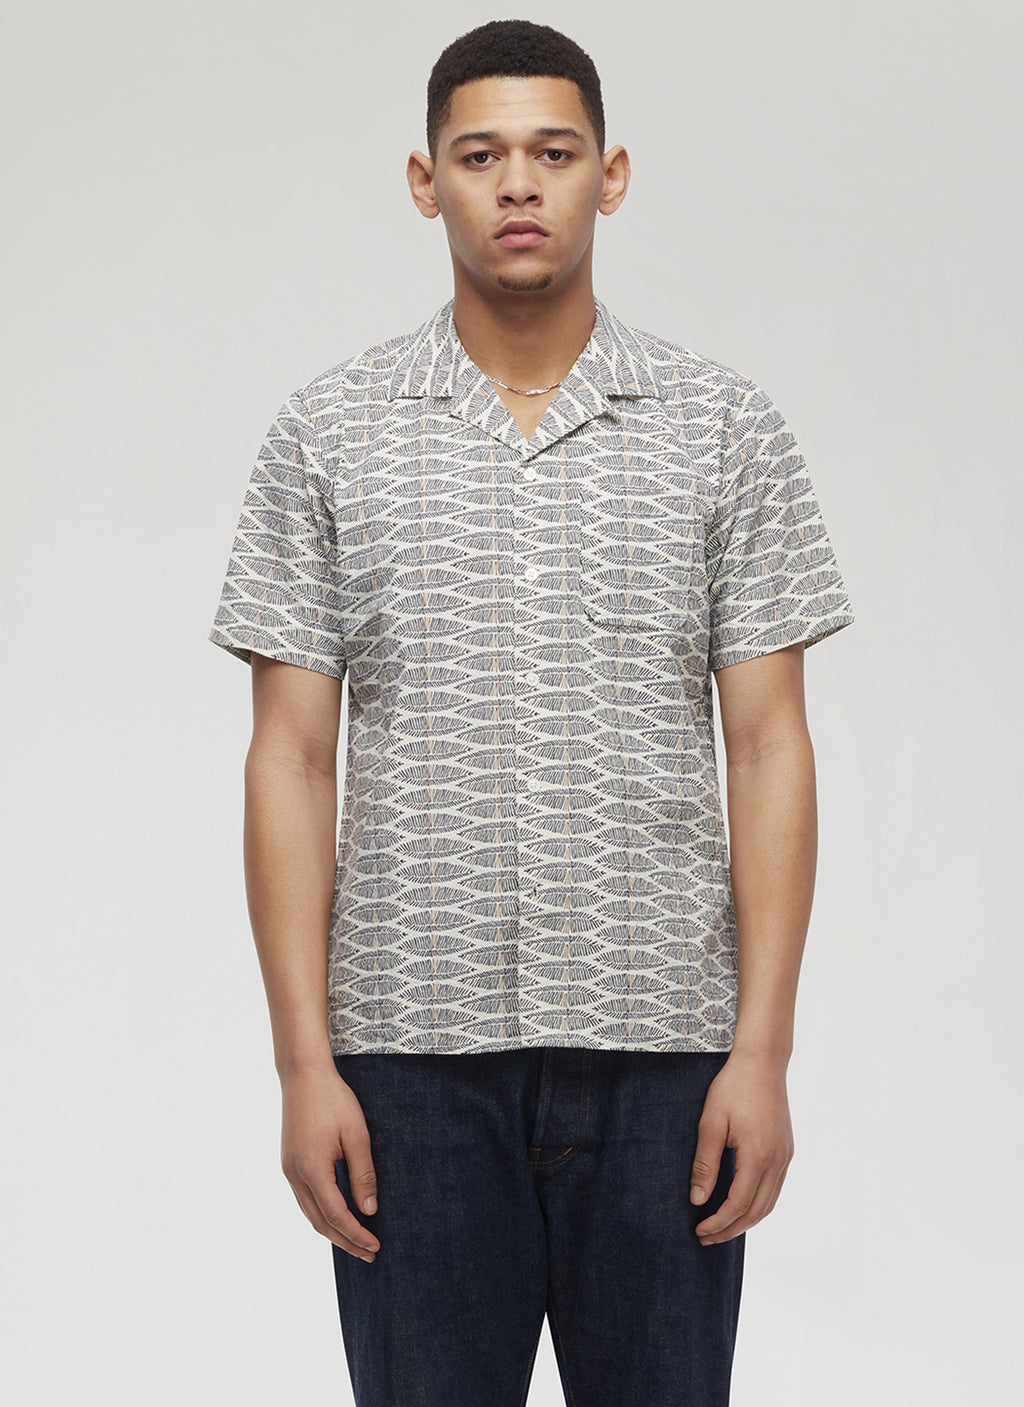 Penfield - Callahan S/S Shirt - Tan - Guys